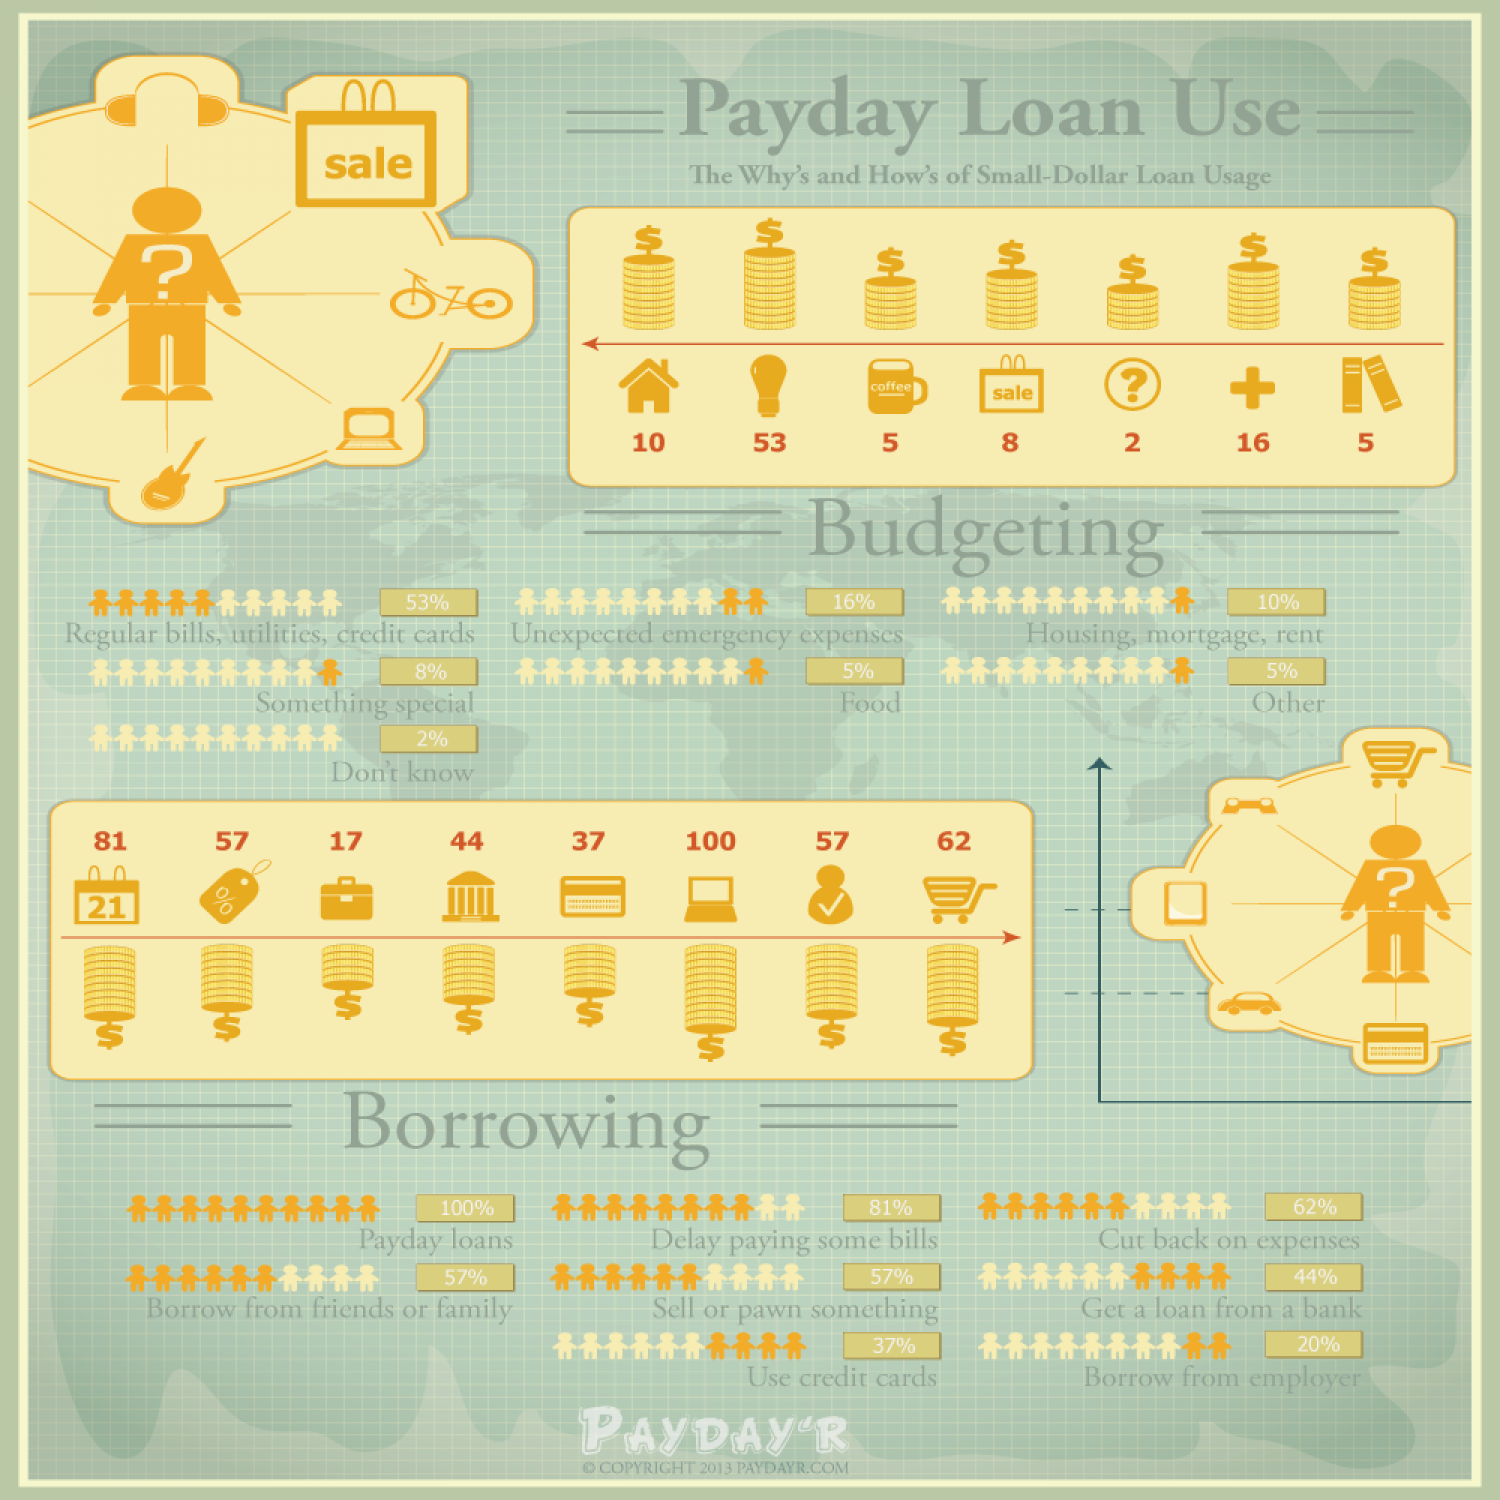 Payday Loan Use Infographic